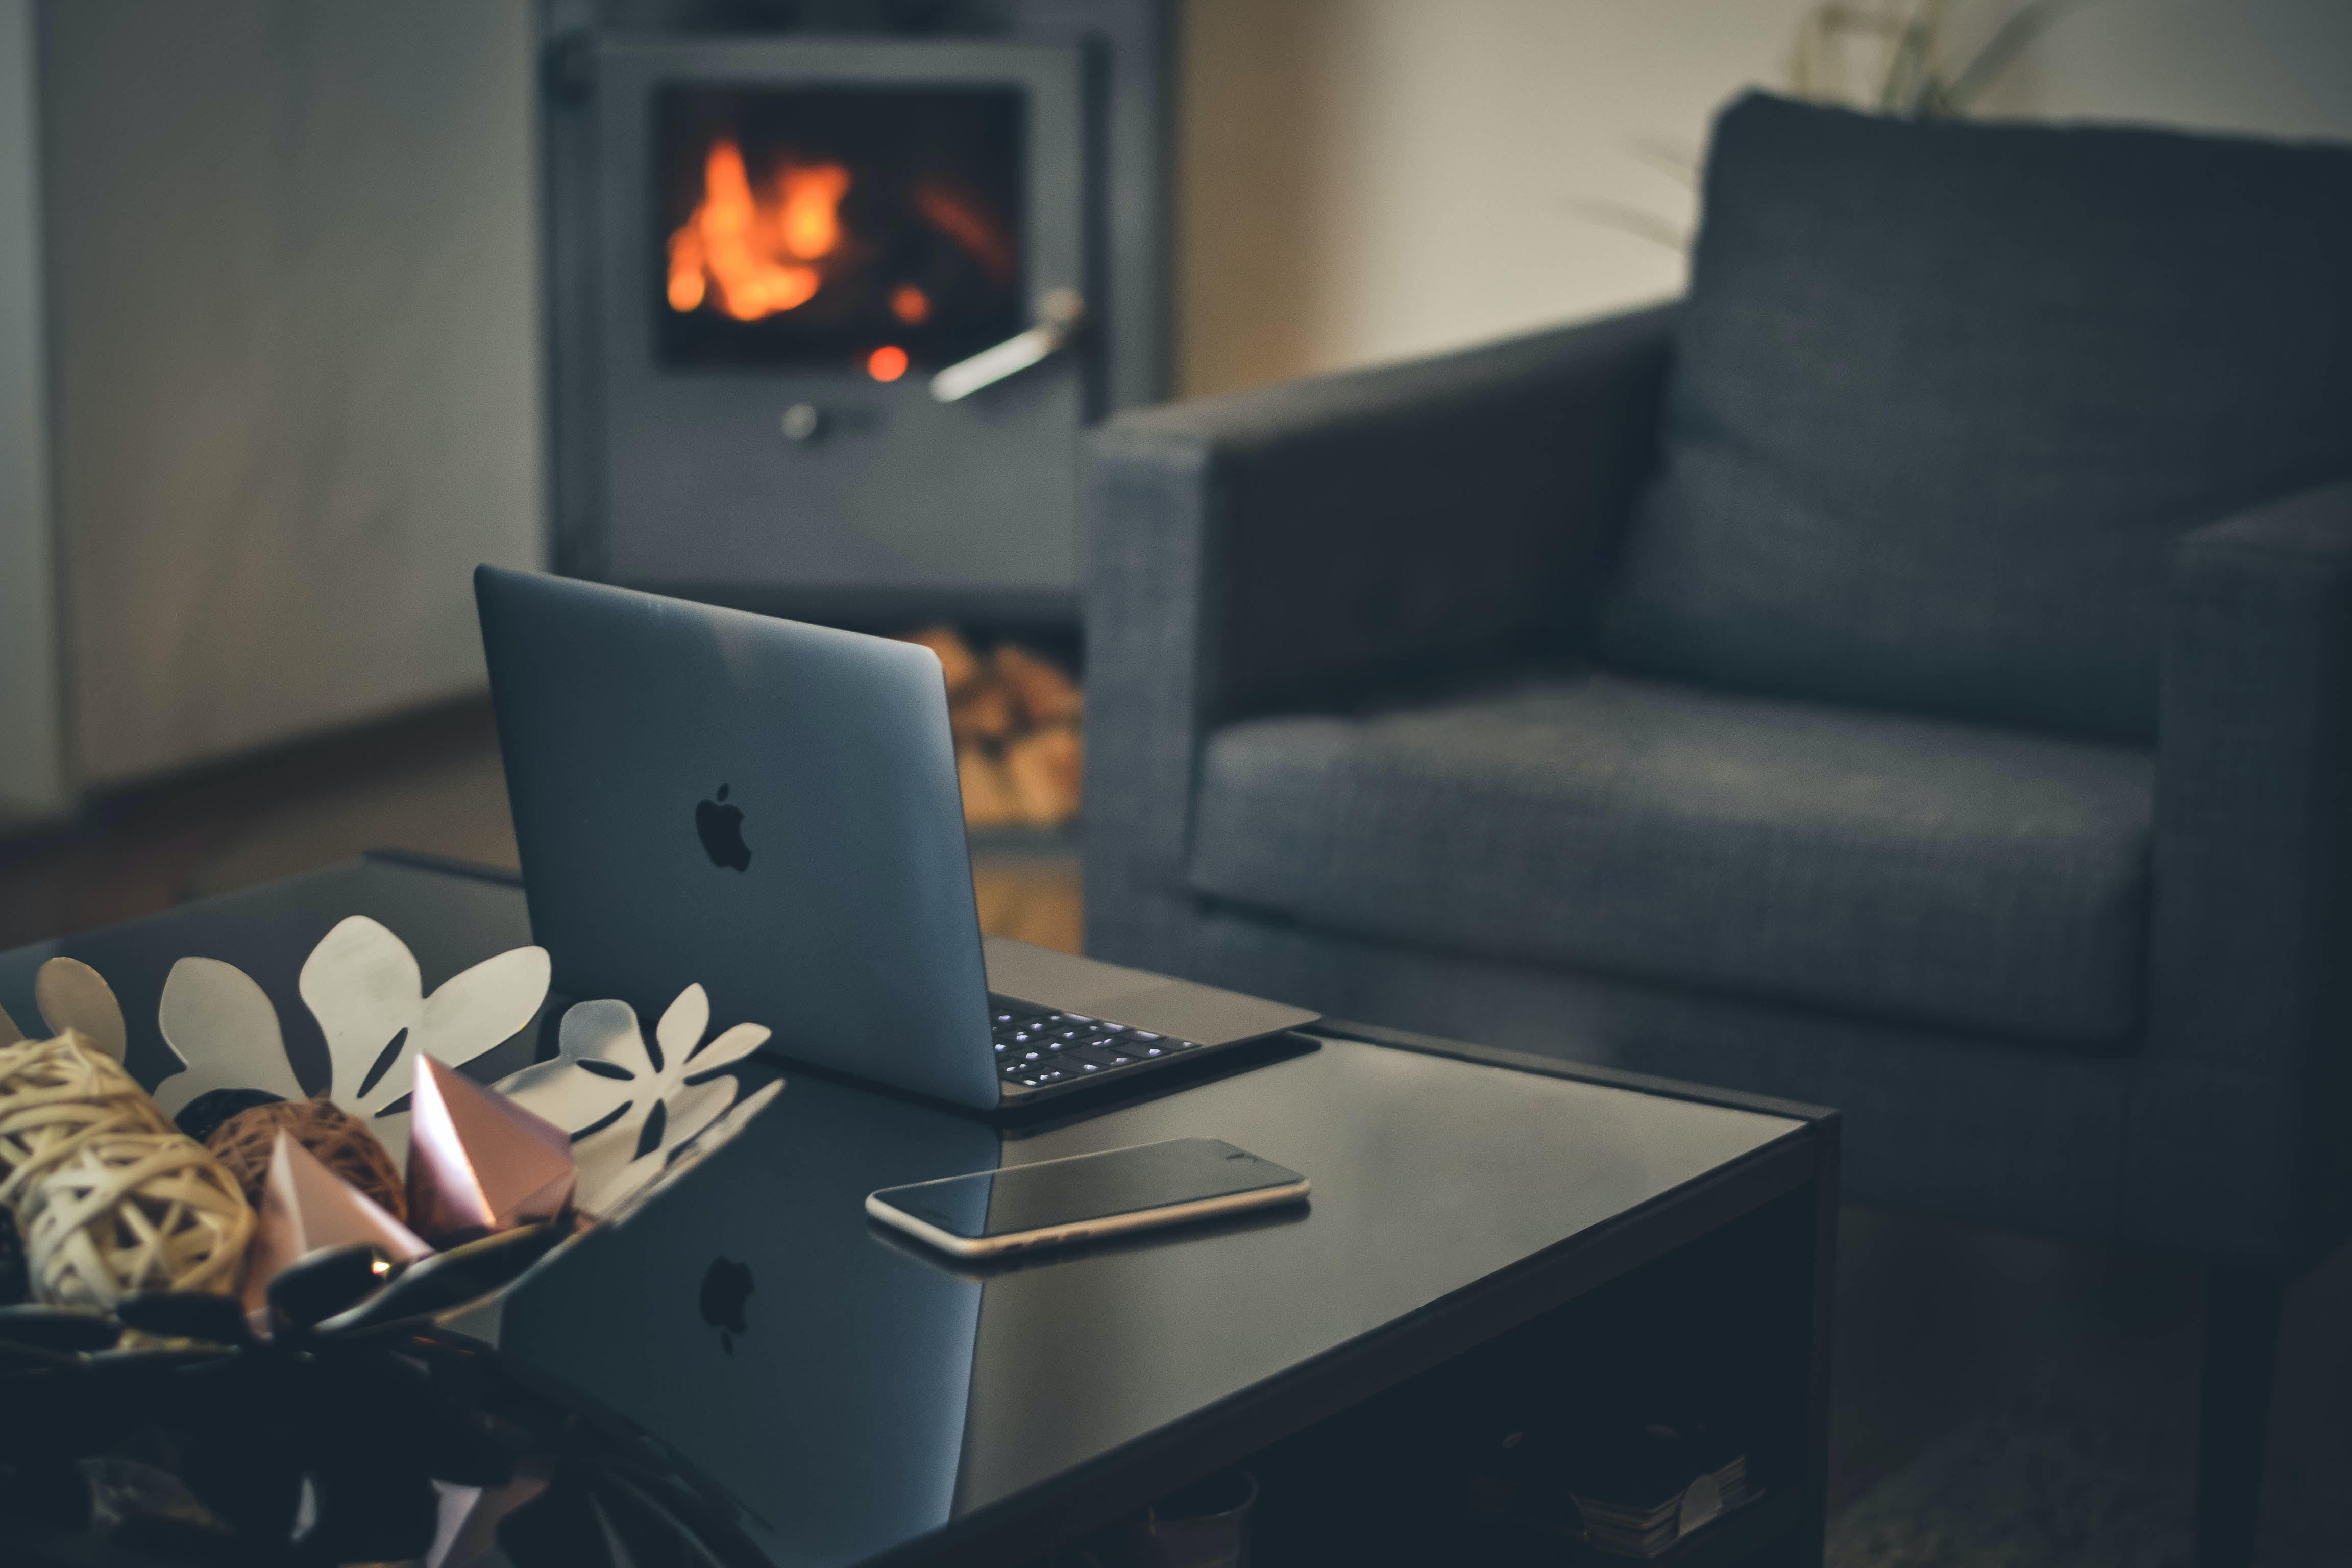 Are virtual events the new fireside chat?